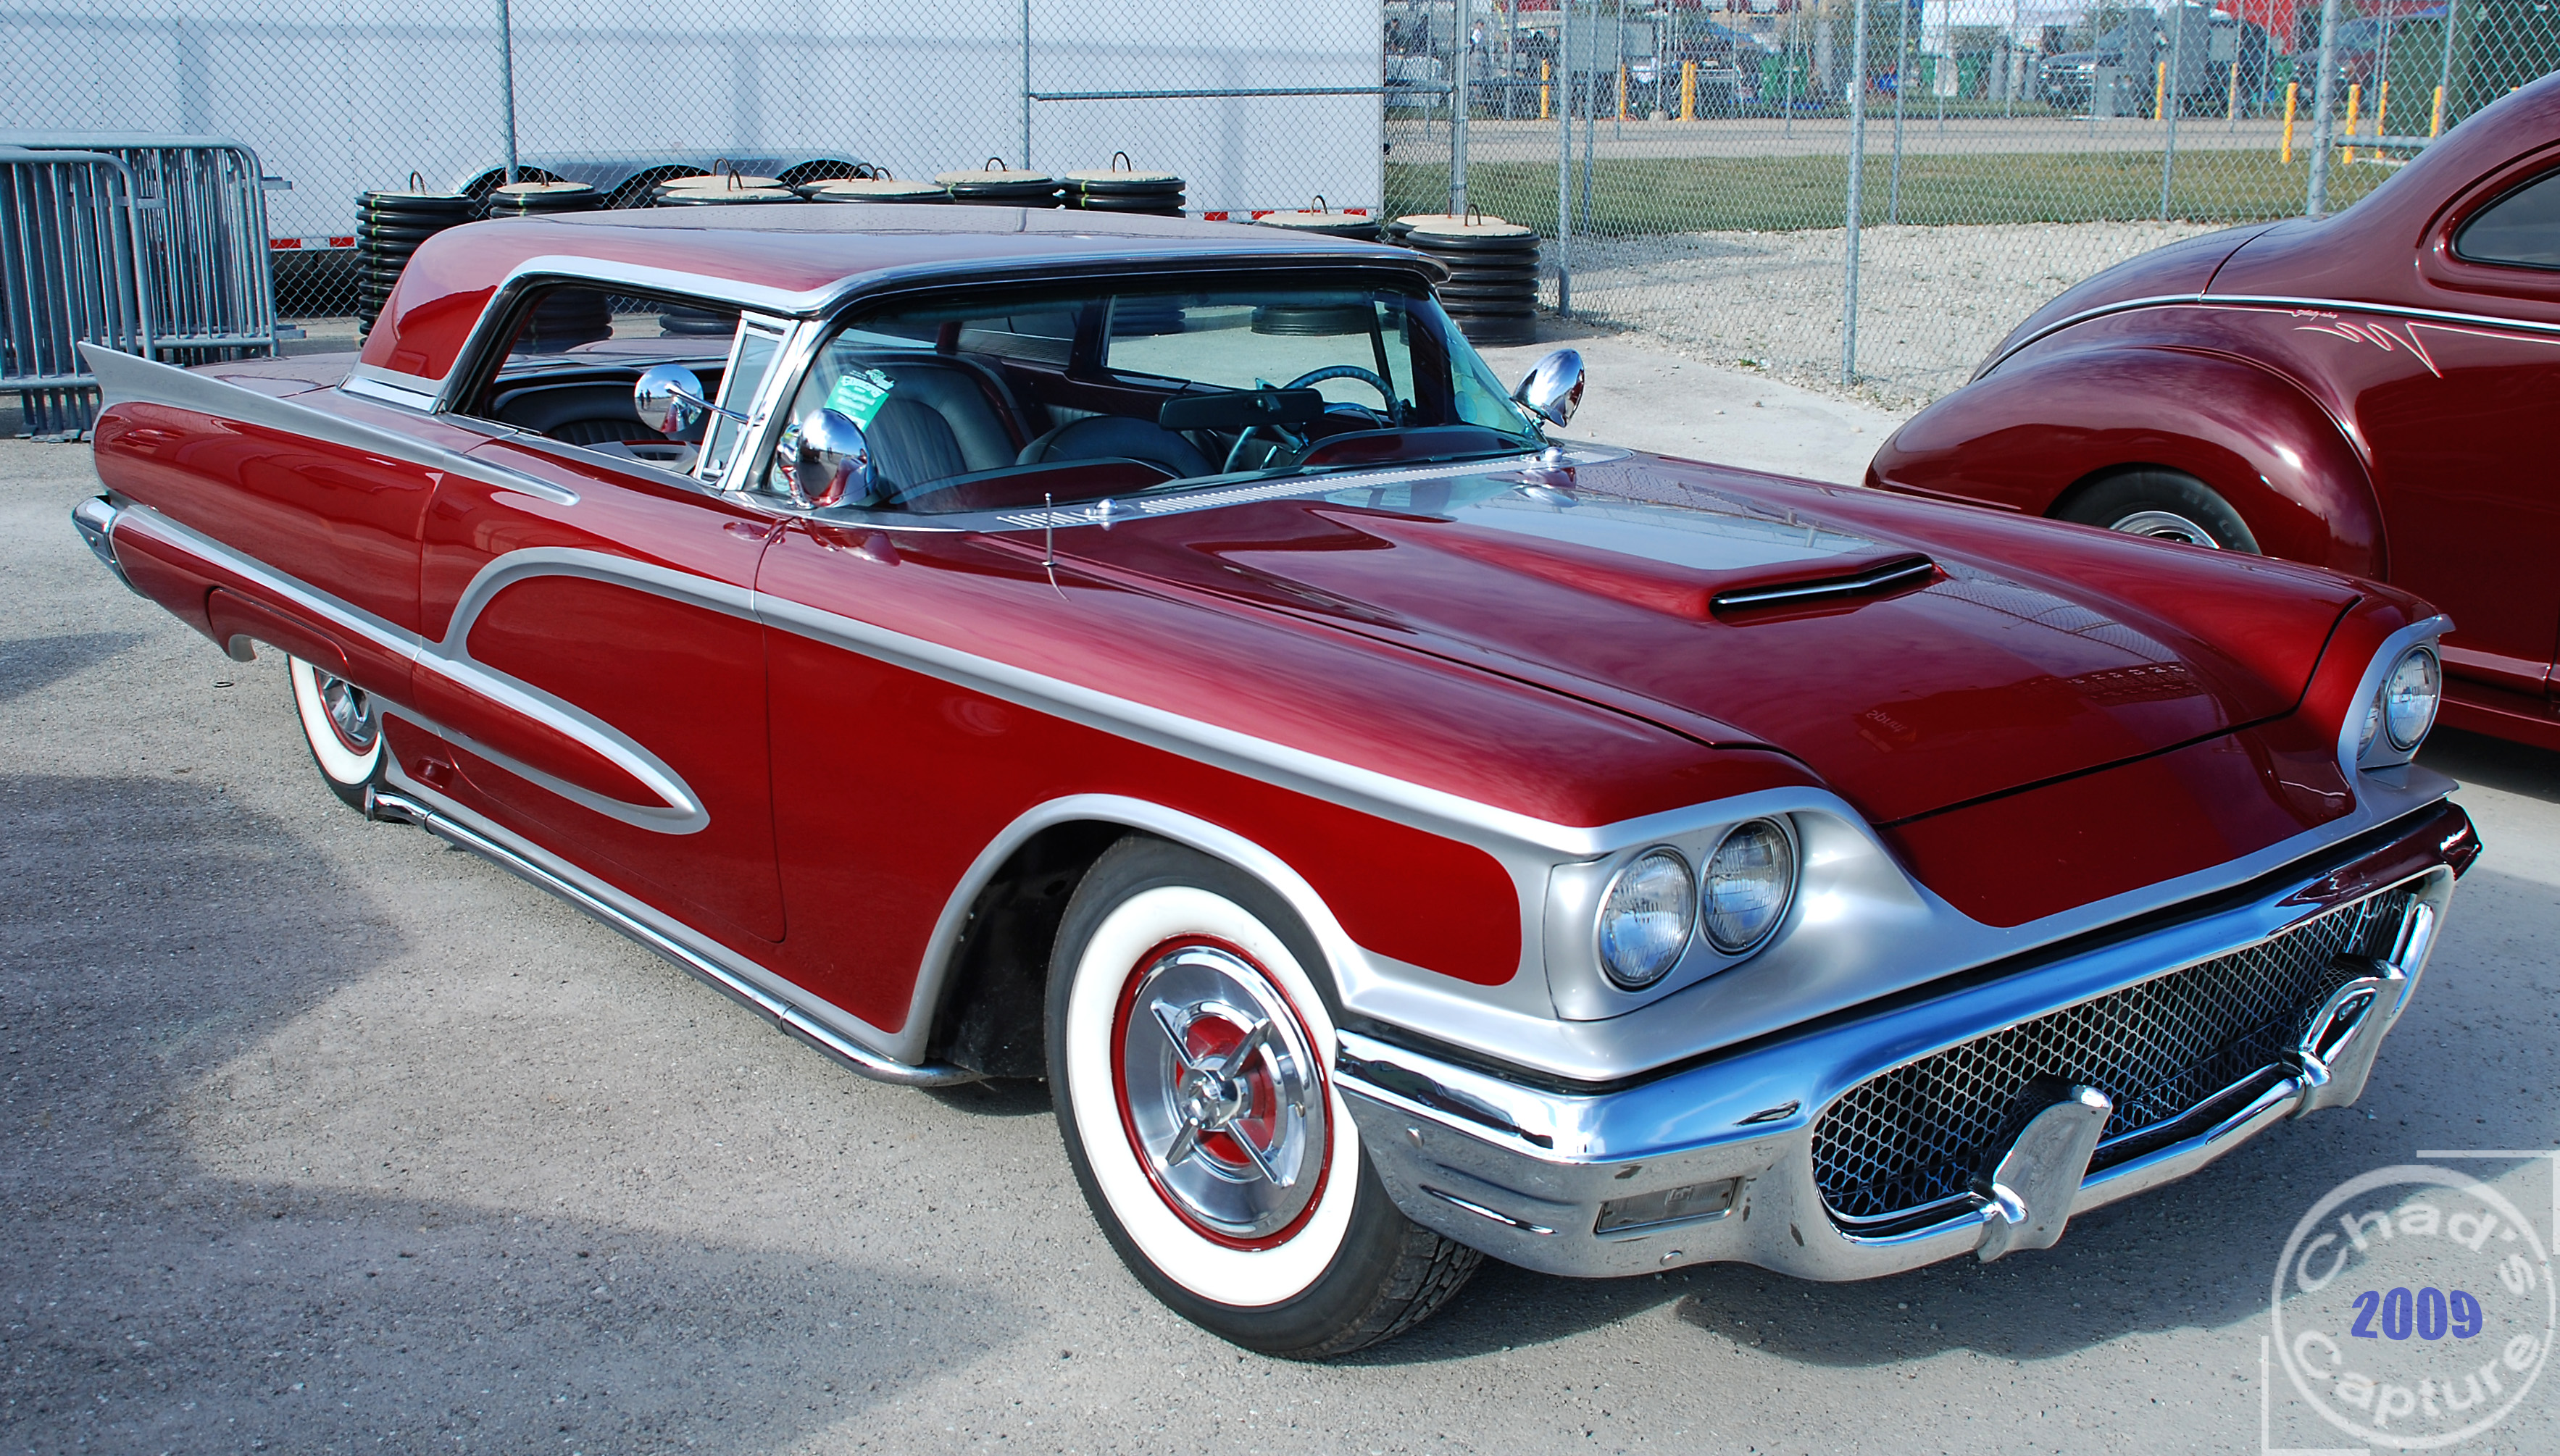 ford thunderbird seriess #12